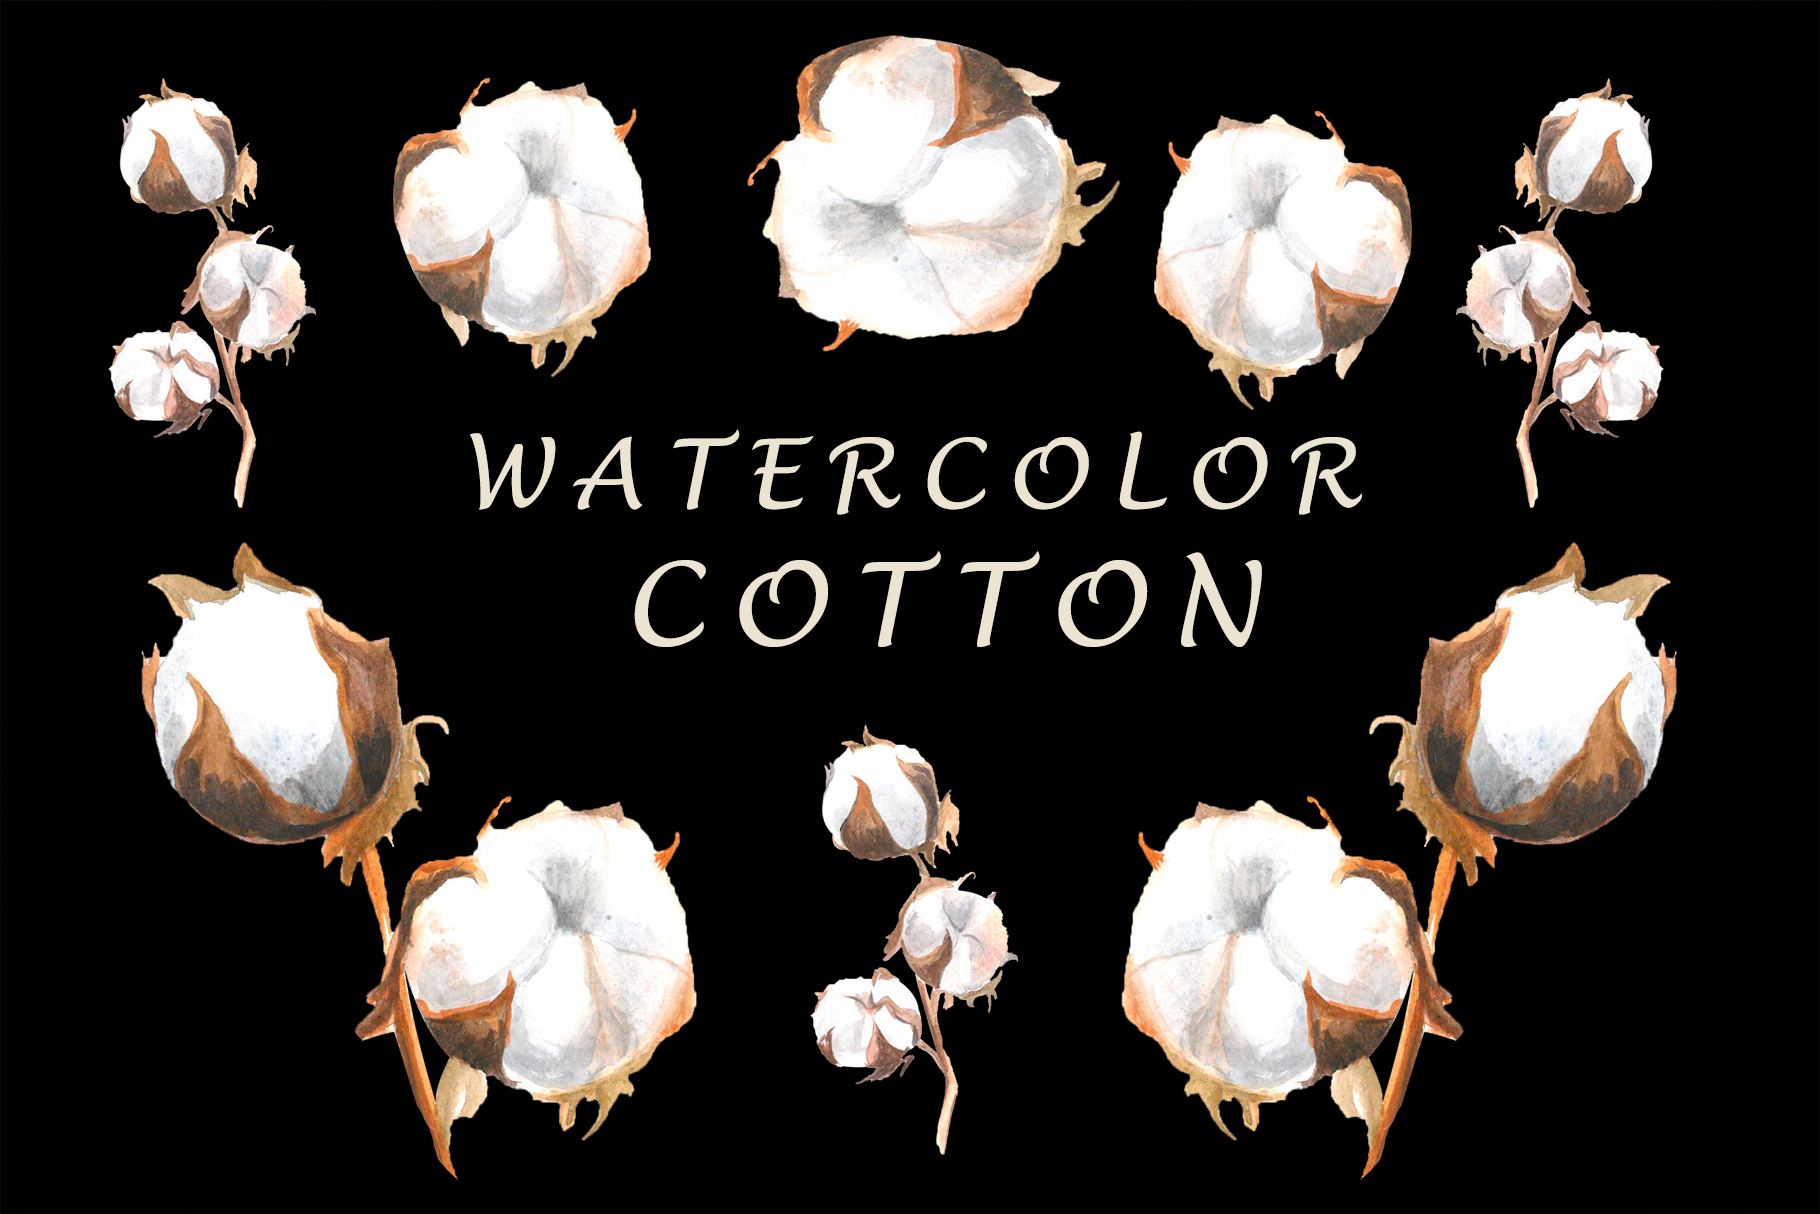 Watercolor cotton example image 1